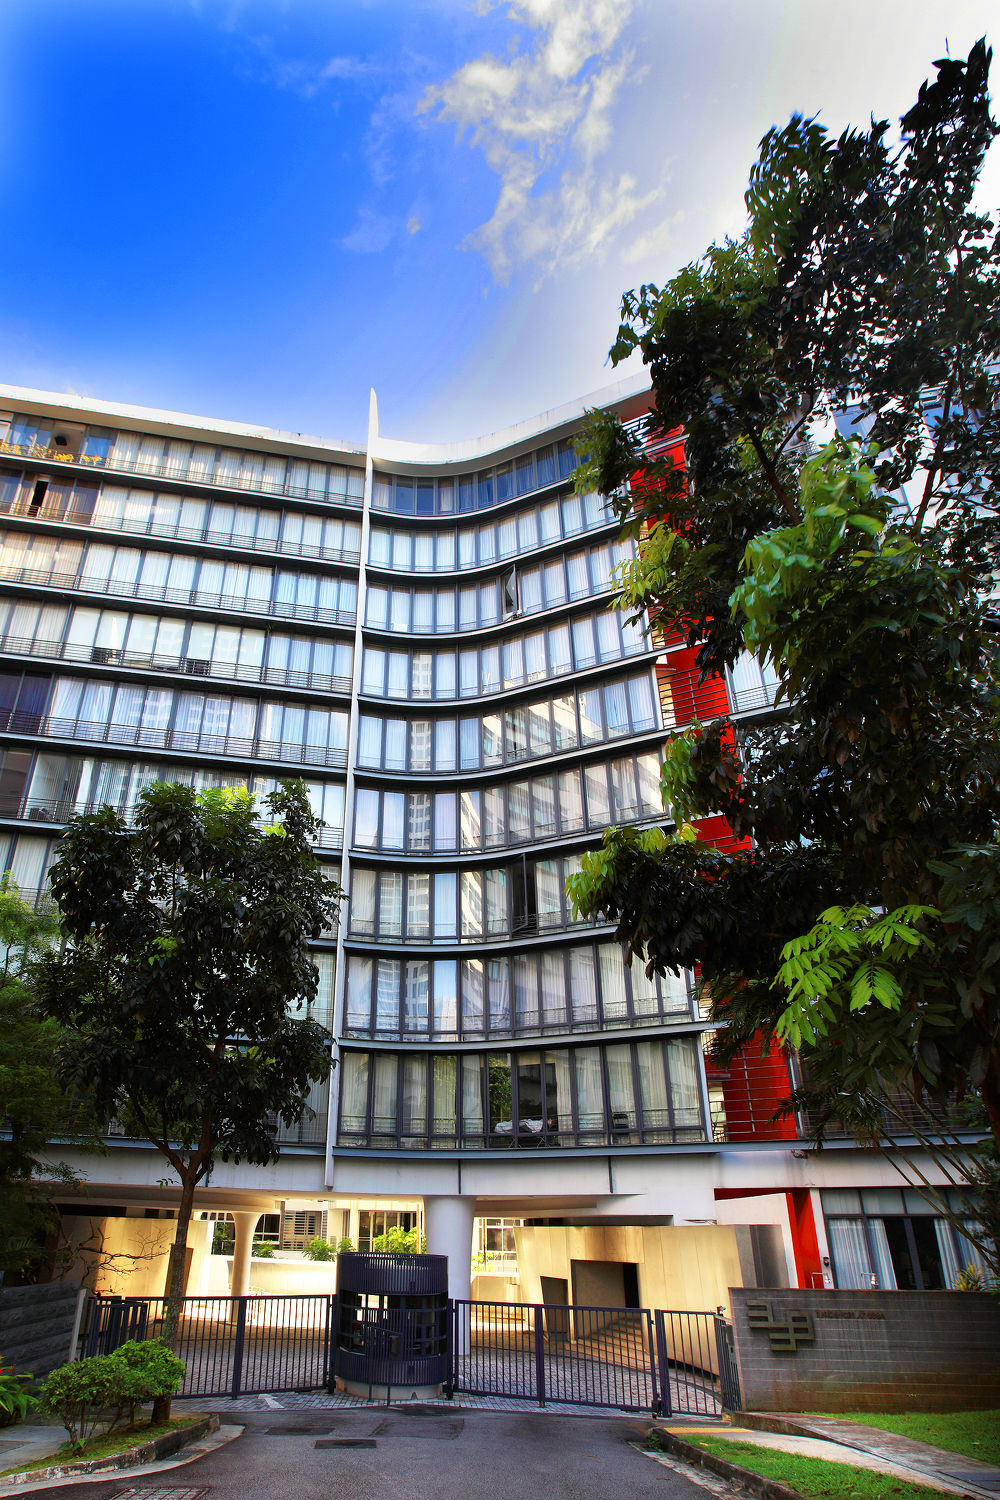 Residences at 338A - EDGEPROP SINGAPORE